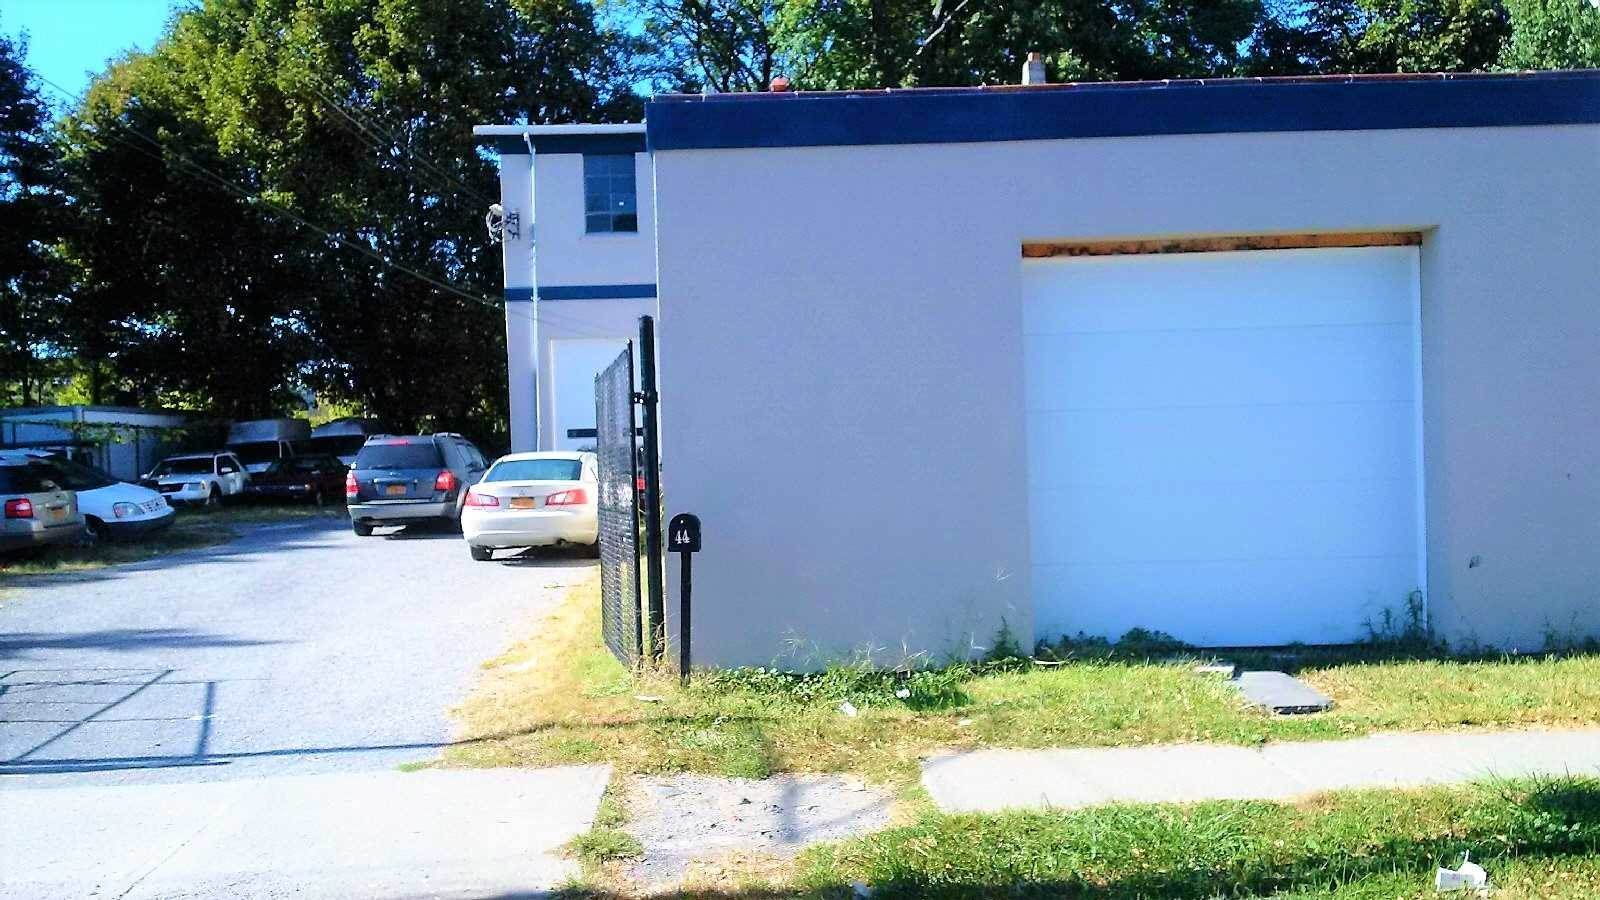 Additional photo for property listing at 44 SMITH STREET 44 SMITH STREET Poughkeepsie, New York 12601 United States